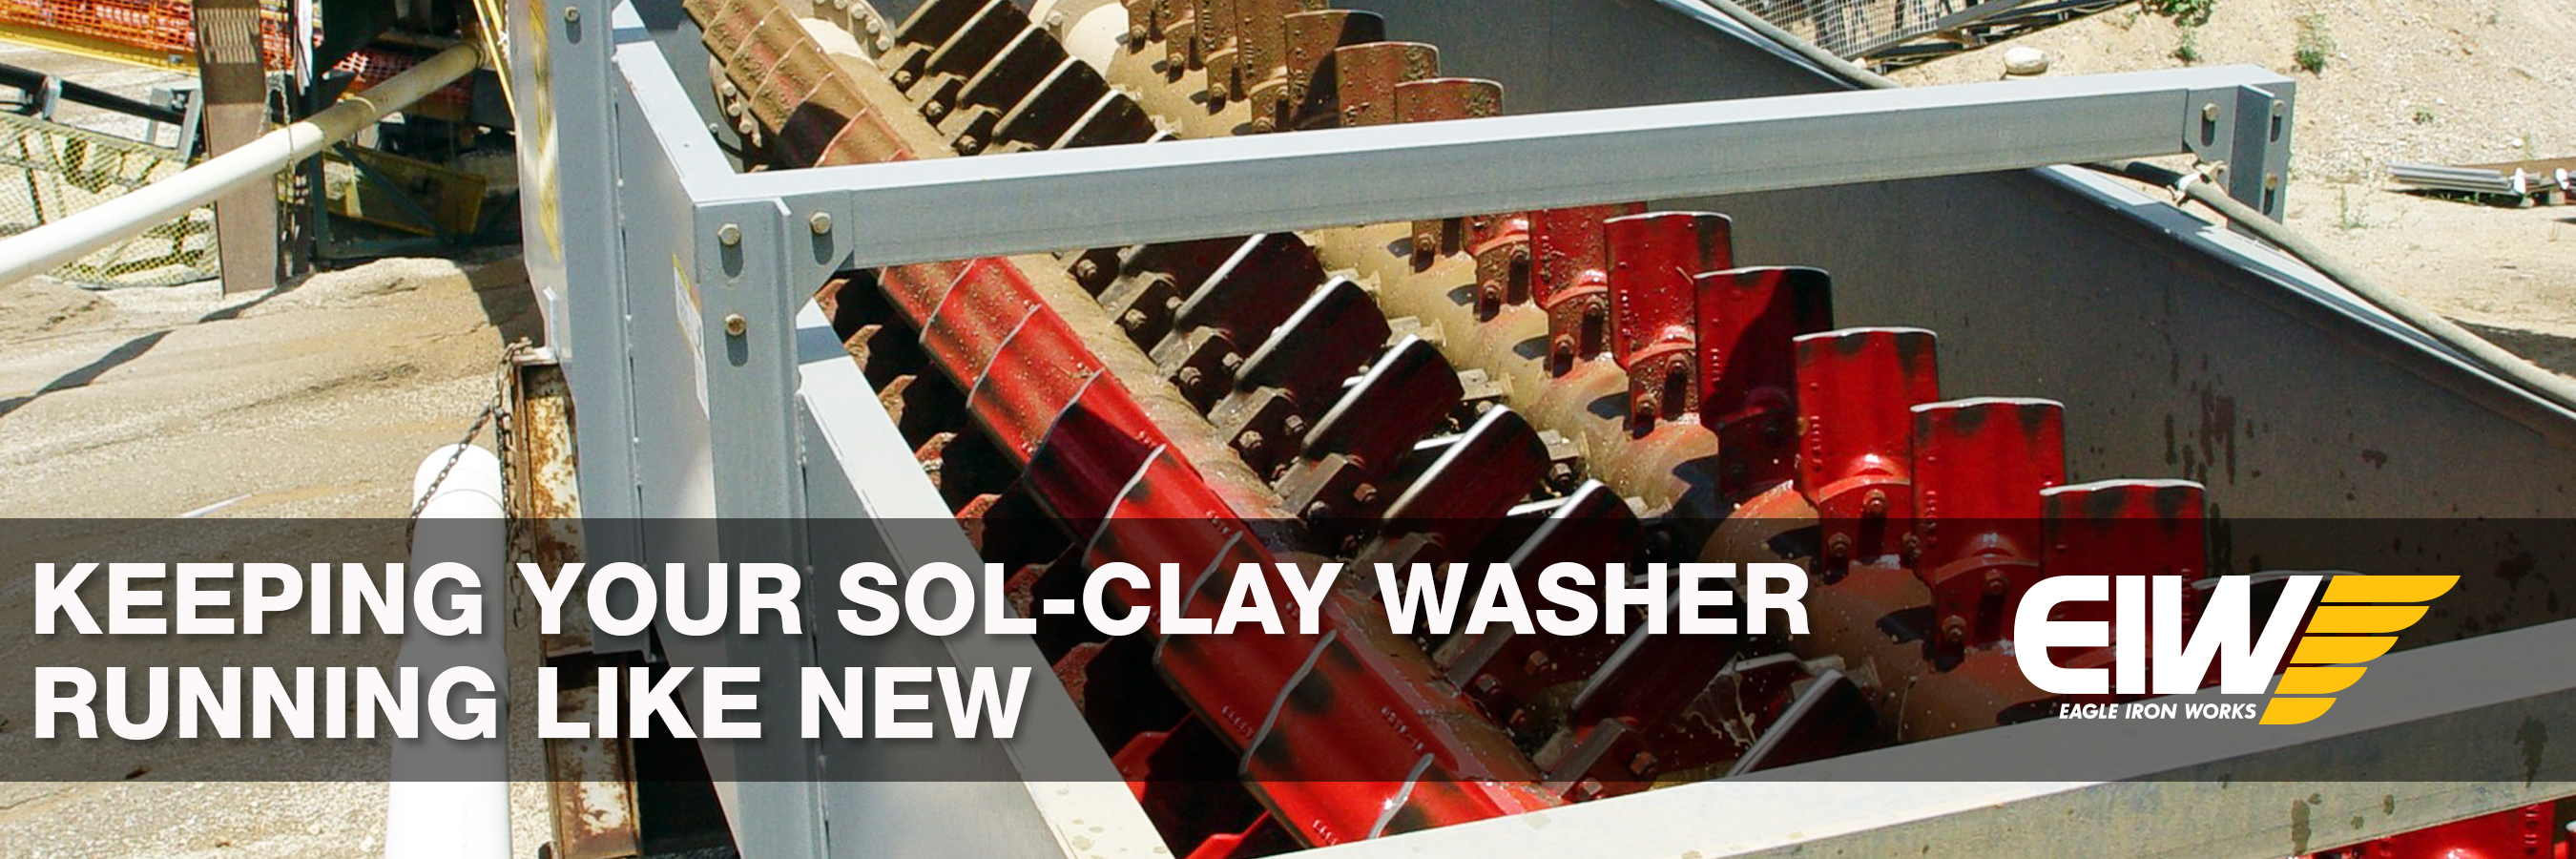 solclay washer running like new